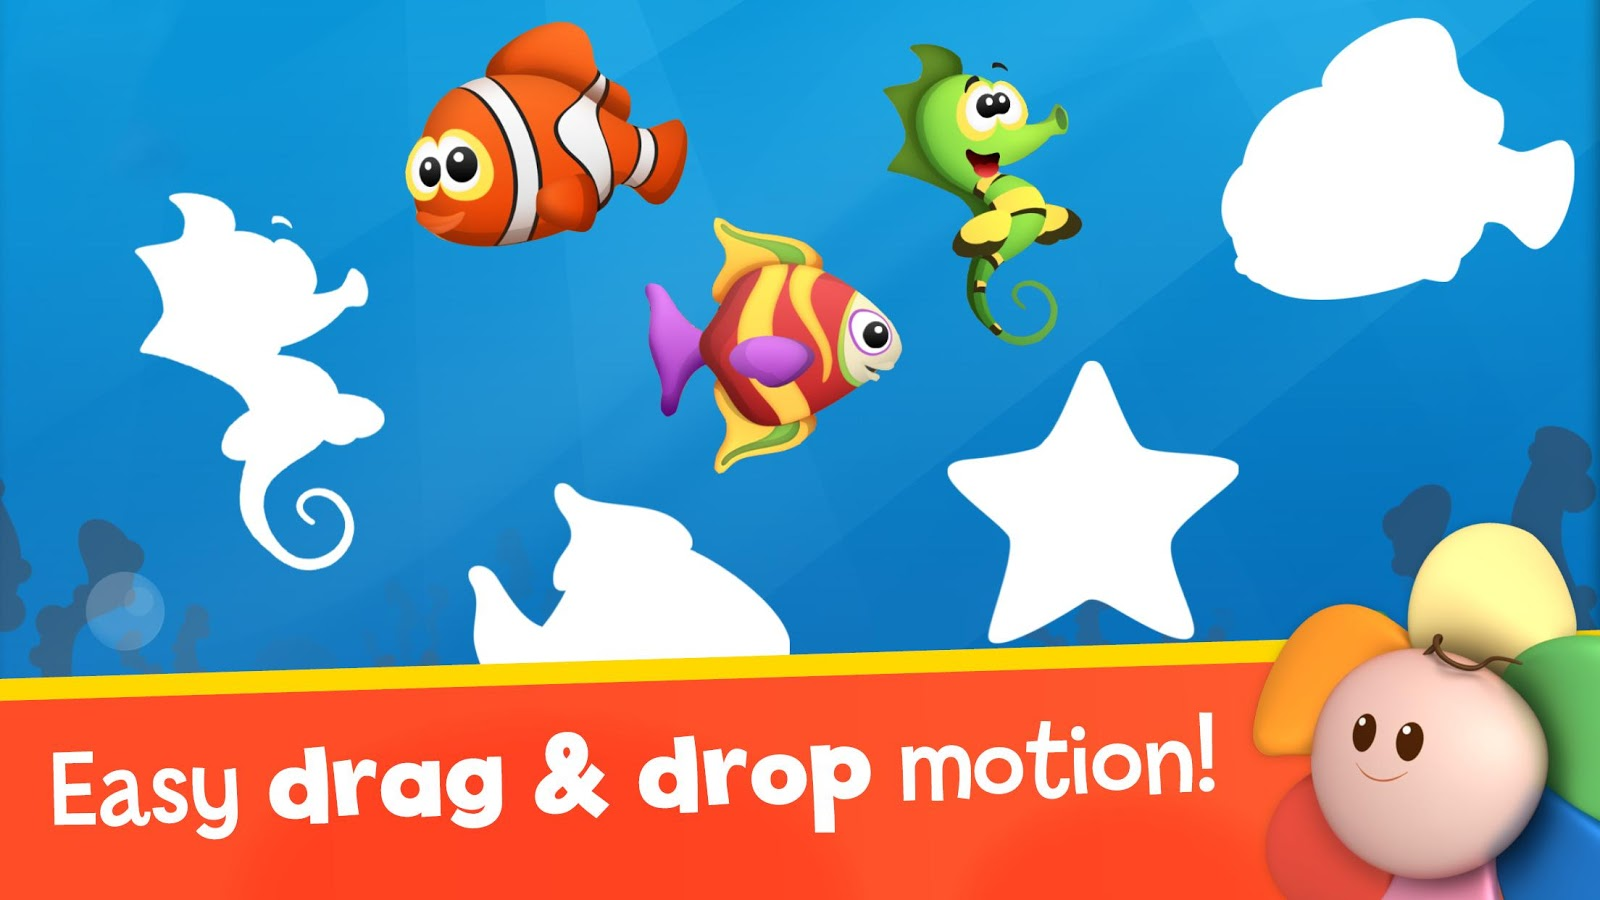 Are drag-and-drop math games educational for kids?